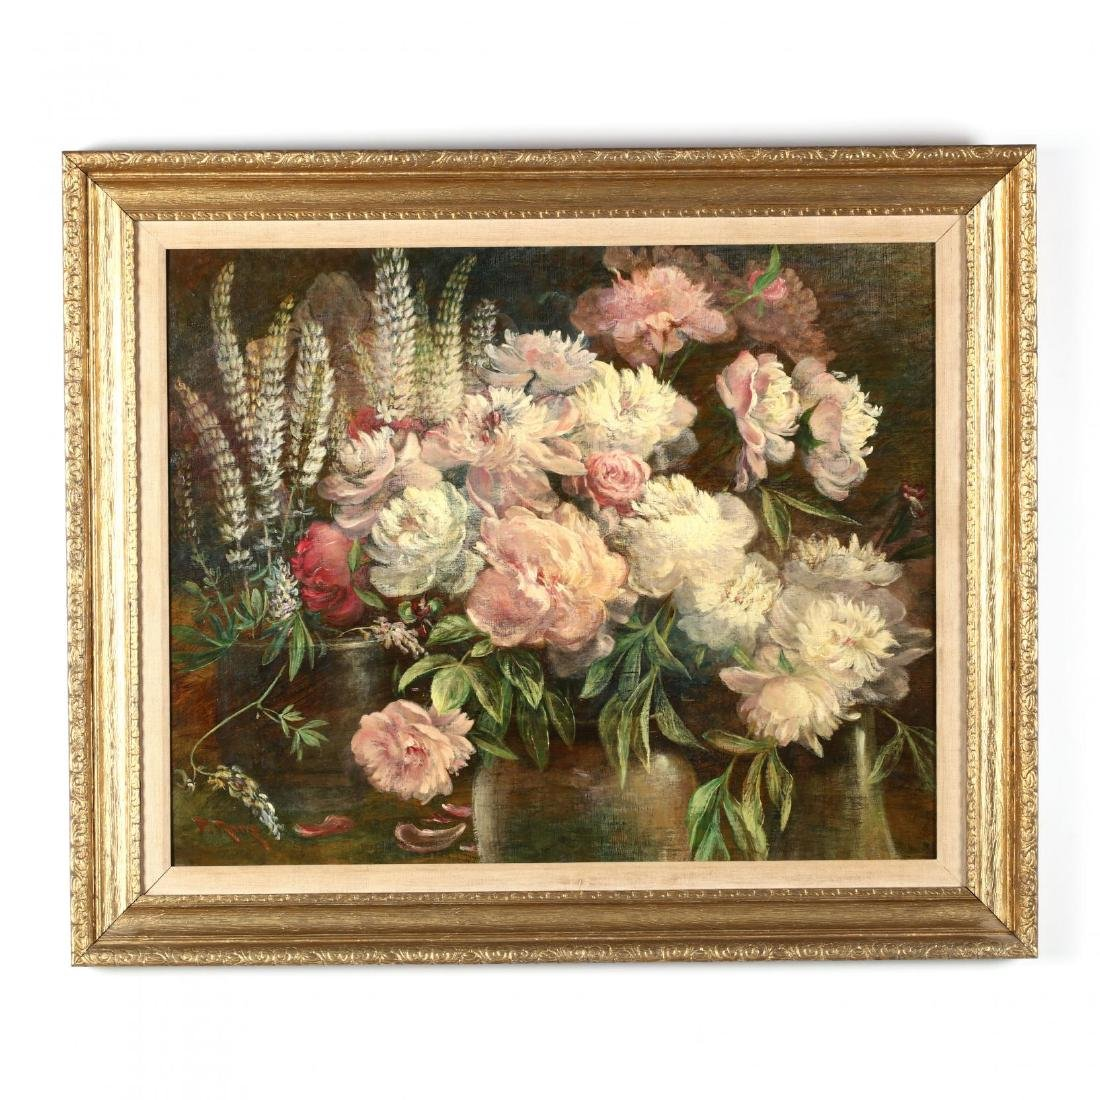 Peter Roos (MA/IL, 1850-1920), Still Life with Peonies